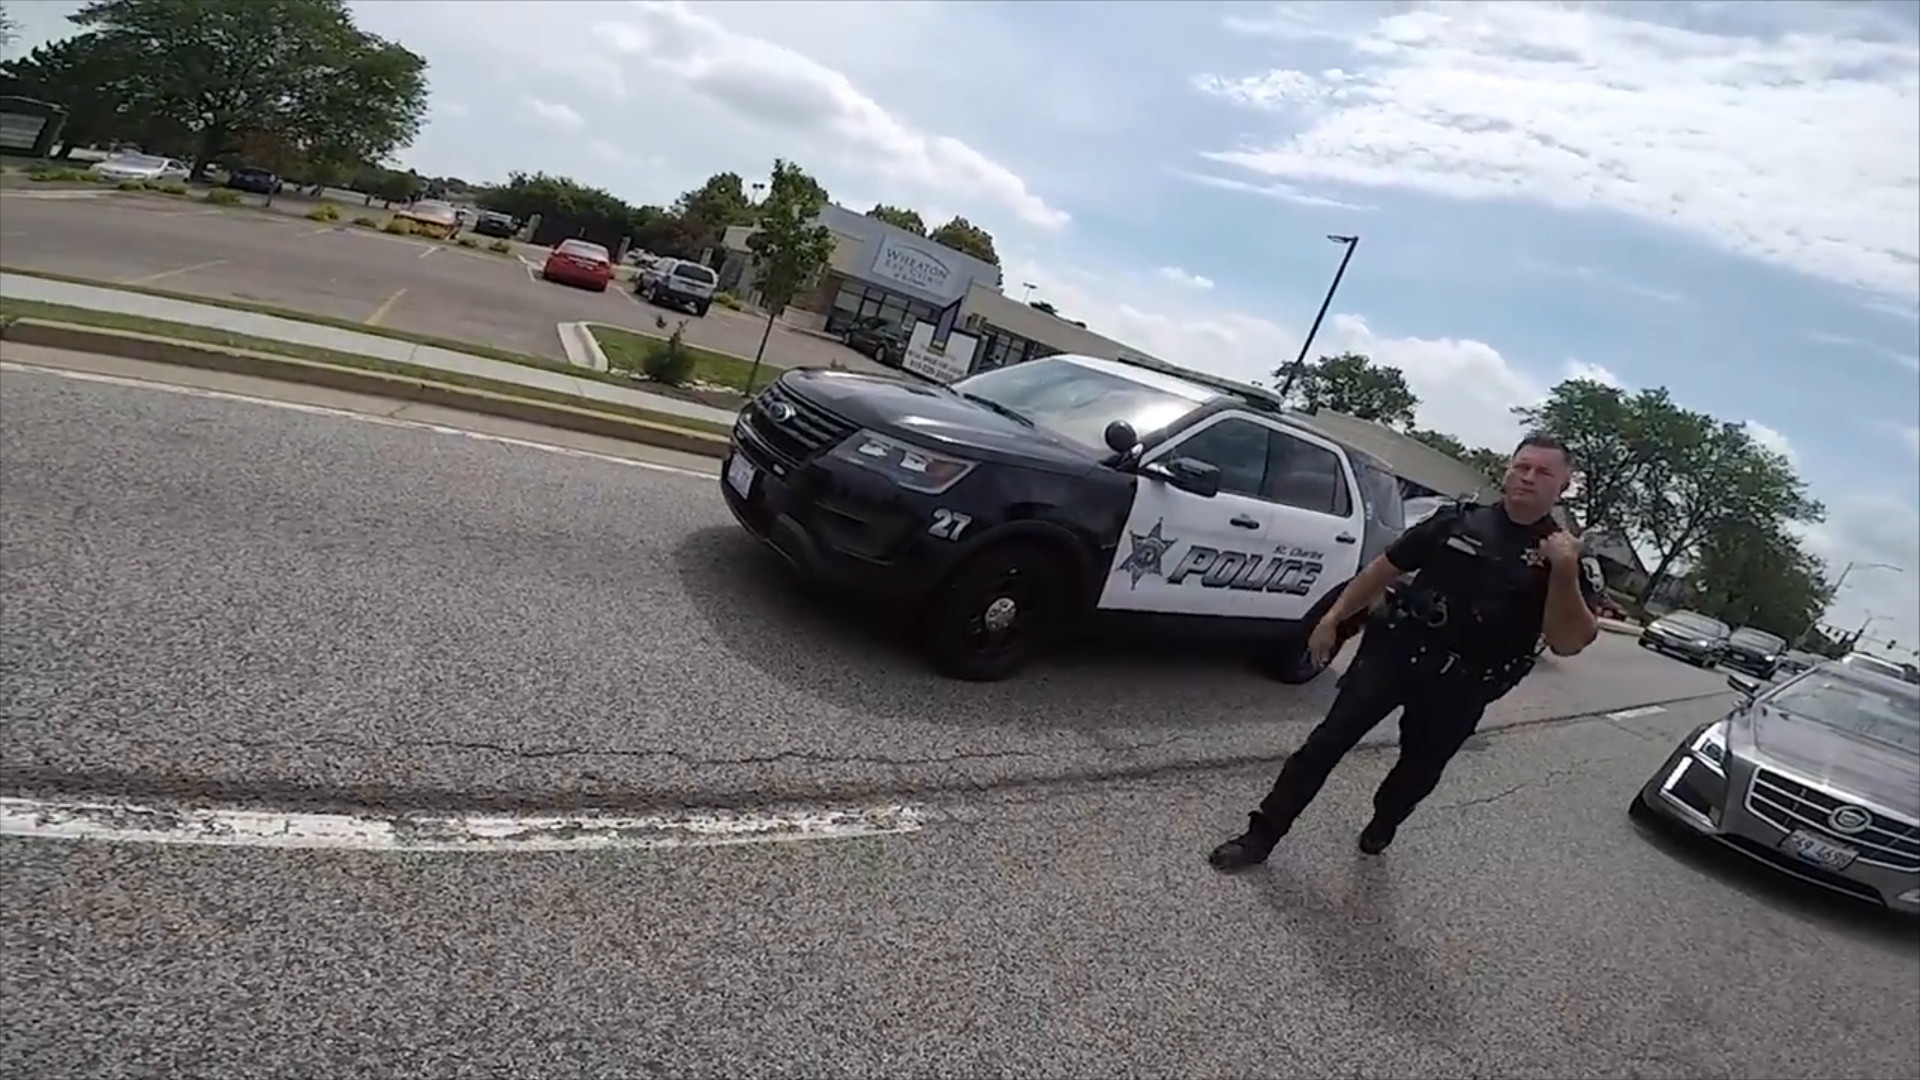 st charles motorcyclist faces felony charges based on